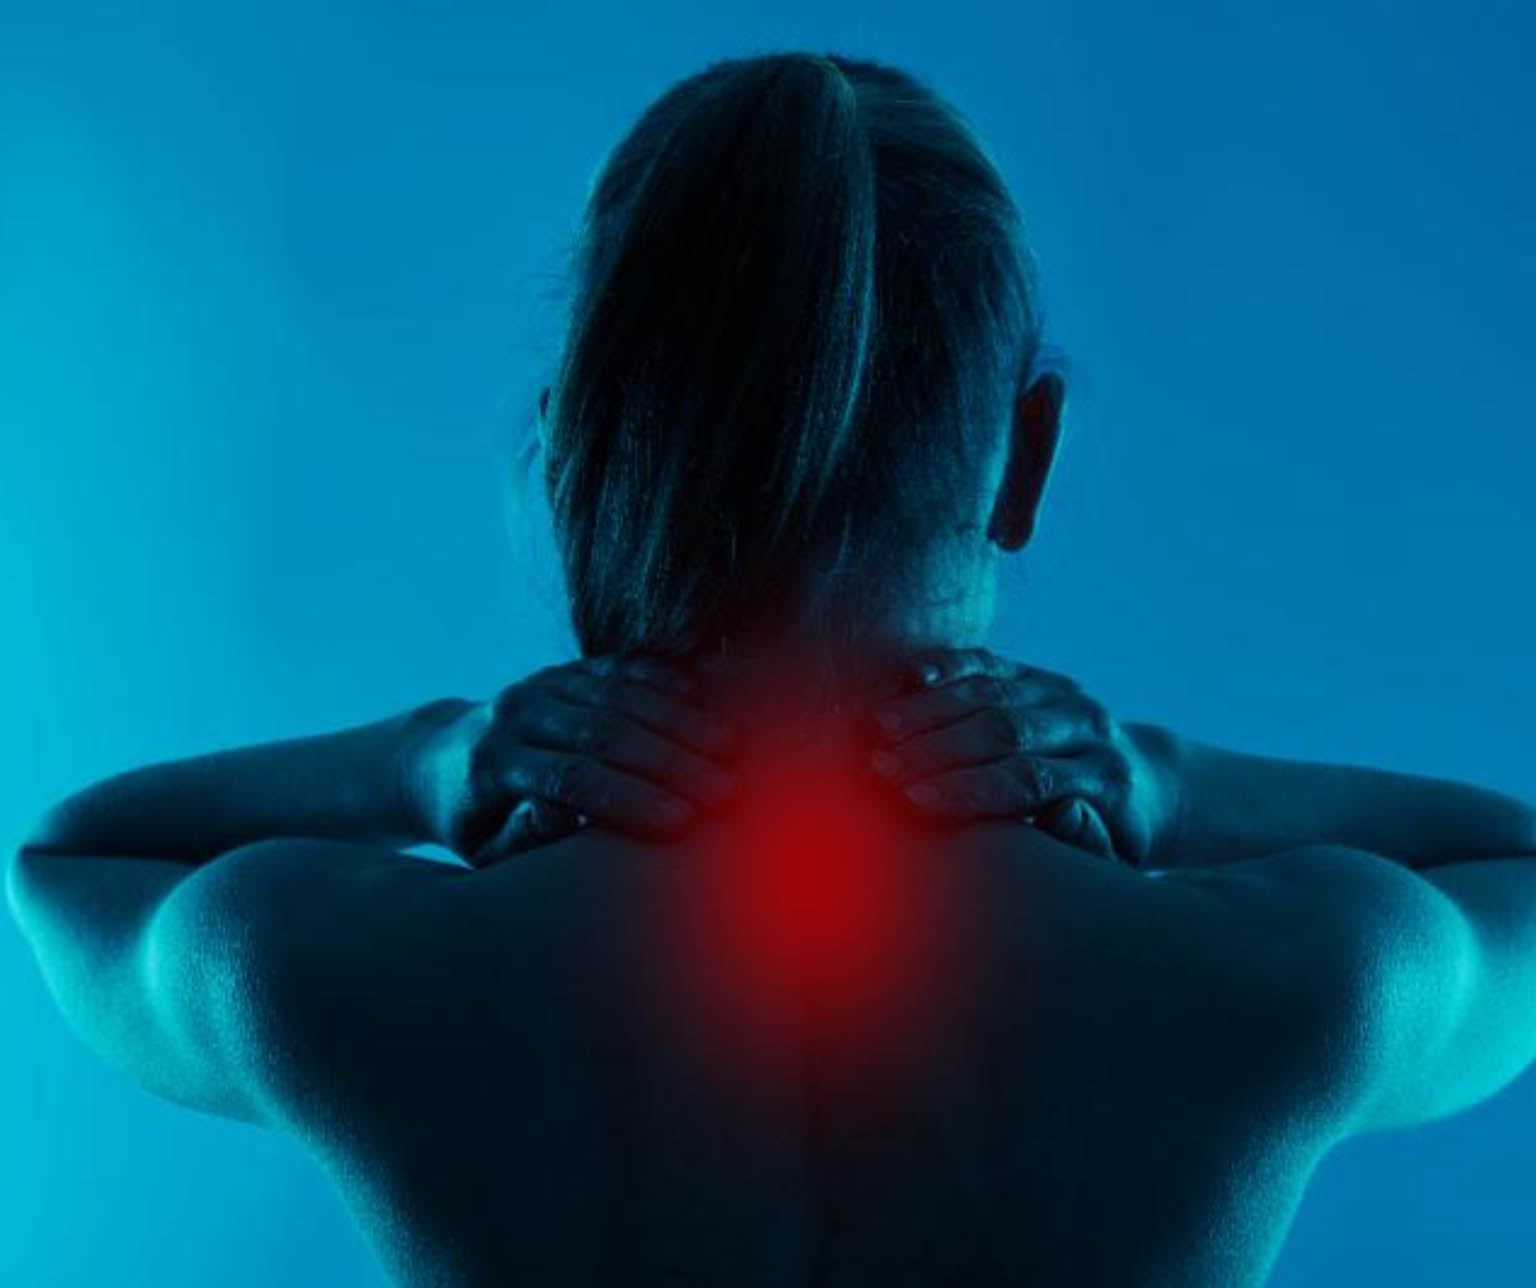 chiropractors_alleviate_neck_pain